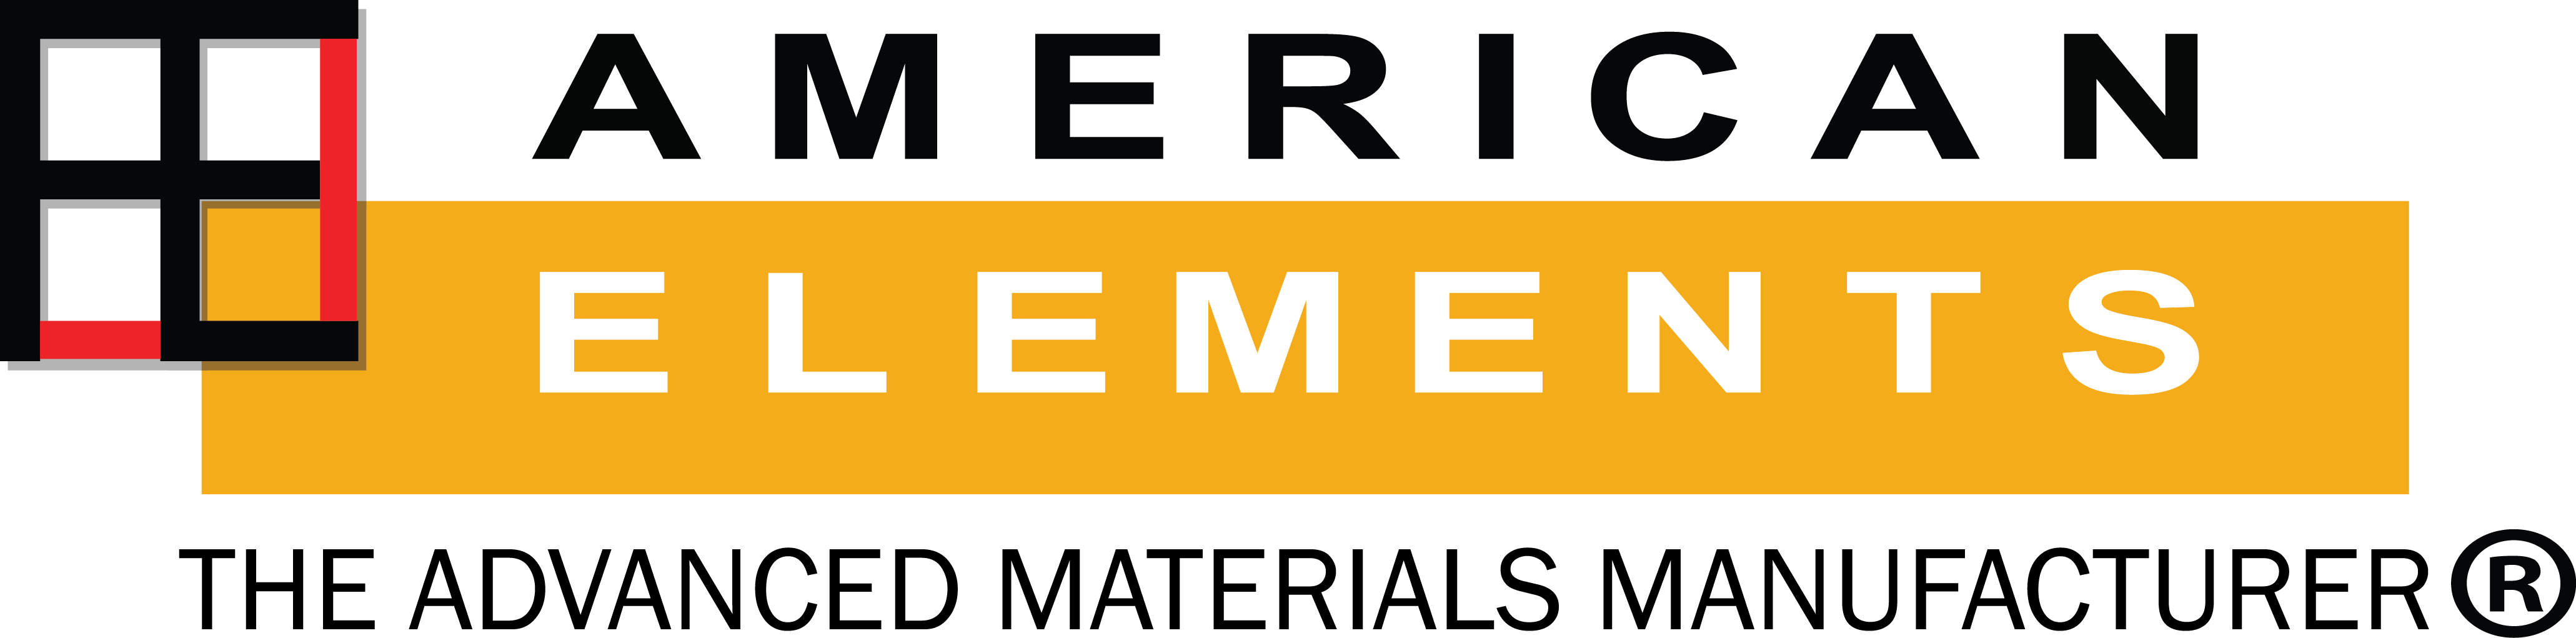 American Elements, global manufacturer of advanced materials for process engineering in automotive, aerospace, energy, biotech, & defense industries